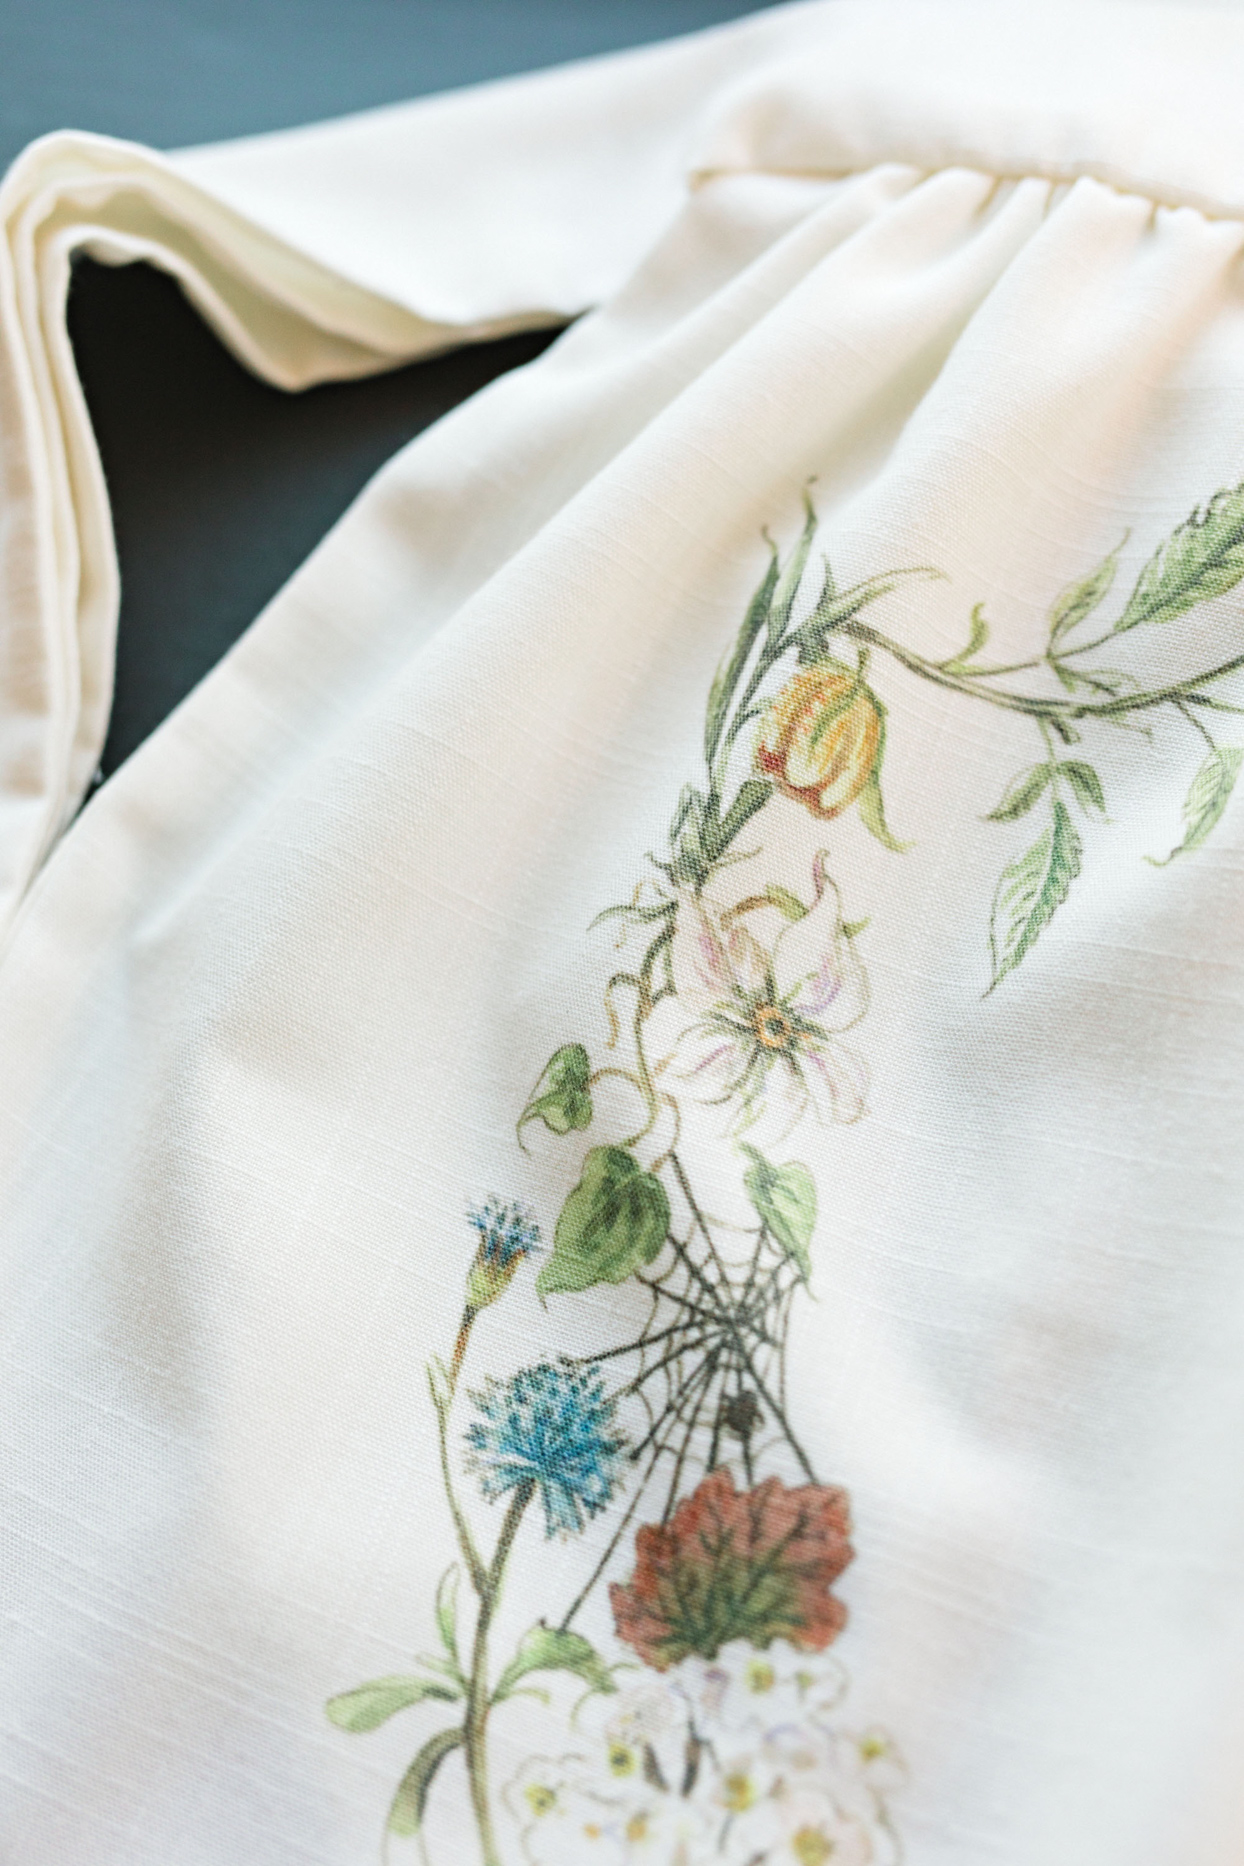 floral and garden themed ornate bridal dress detail